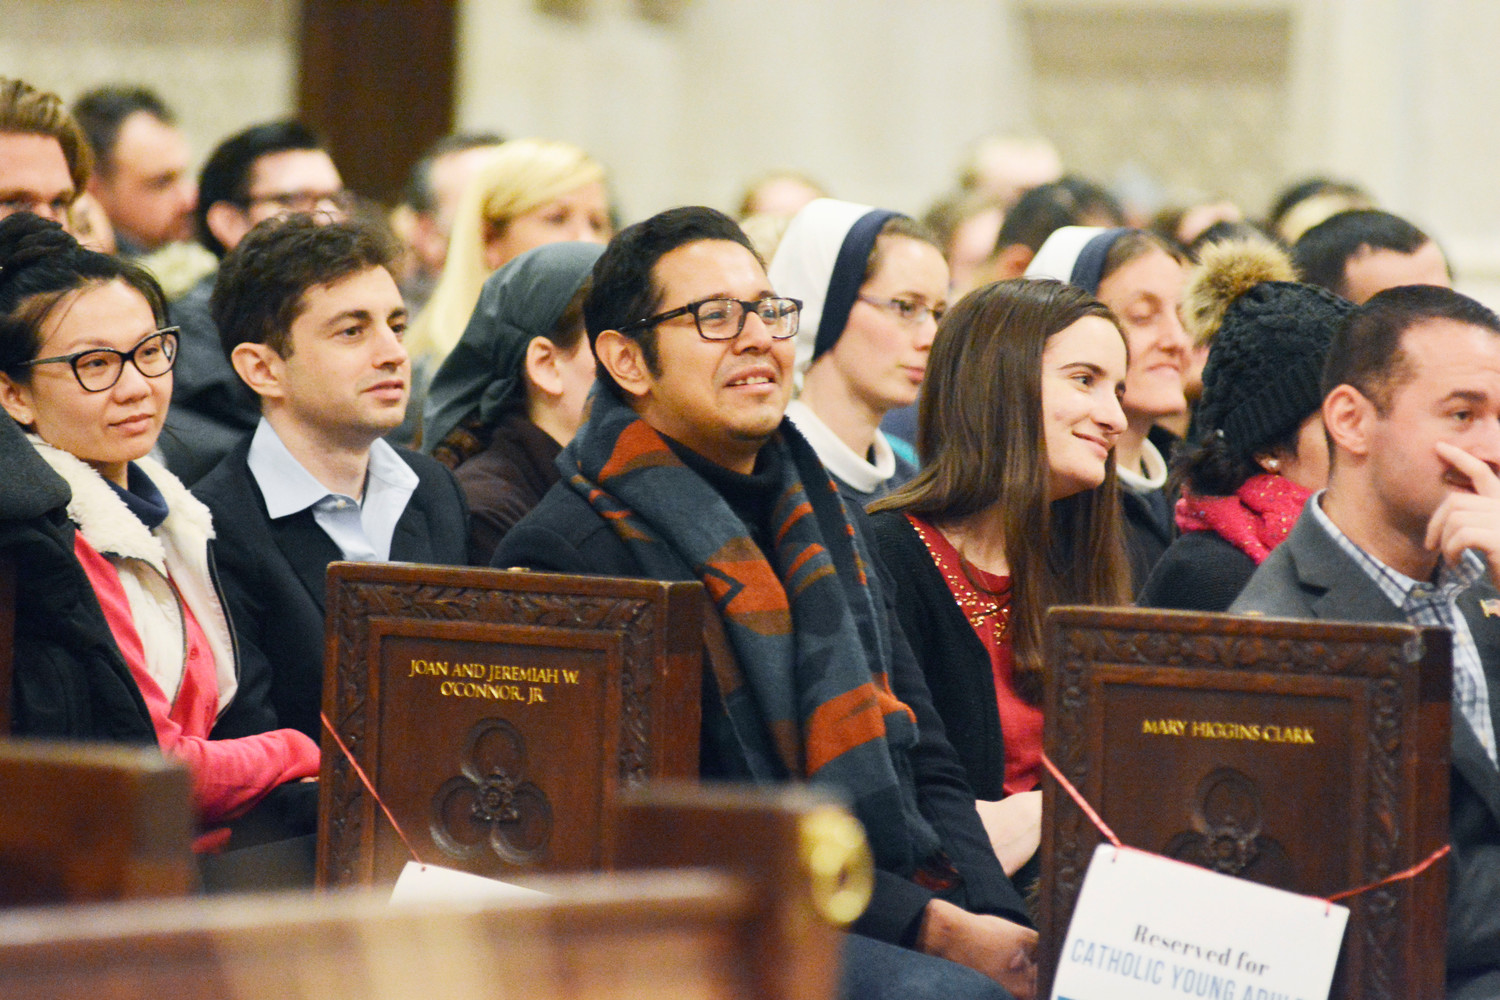 everal hundred young adults attended a Mass celebrated by Father Emmanuel Mansford, C.F.R., at St. Patrick's Cathedral Dec. 13. The Mass was sponsored by the archdiocese's Office of Young Adult Outreach.